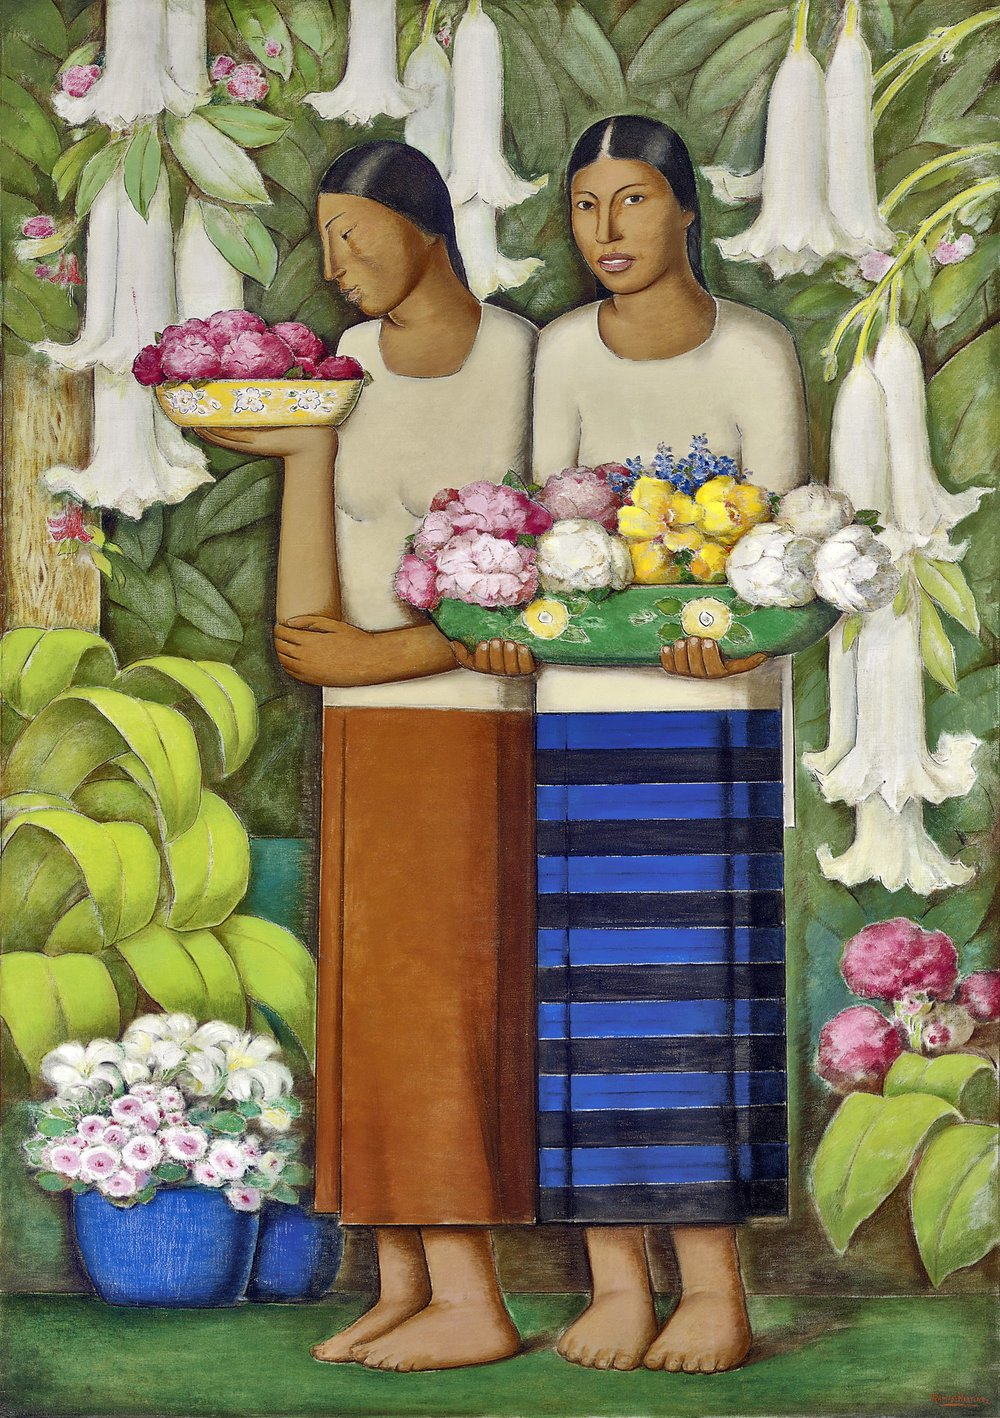 Mujeres Cargando Flores / Women Carrying Flowers  ca. 1932 oil on canvas / óleo sobre tela 59 x 36.5 inches; 149.9 x 92.5 centímetros Private collection